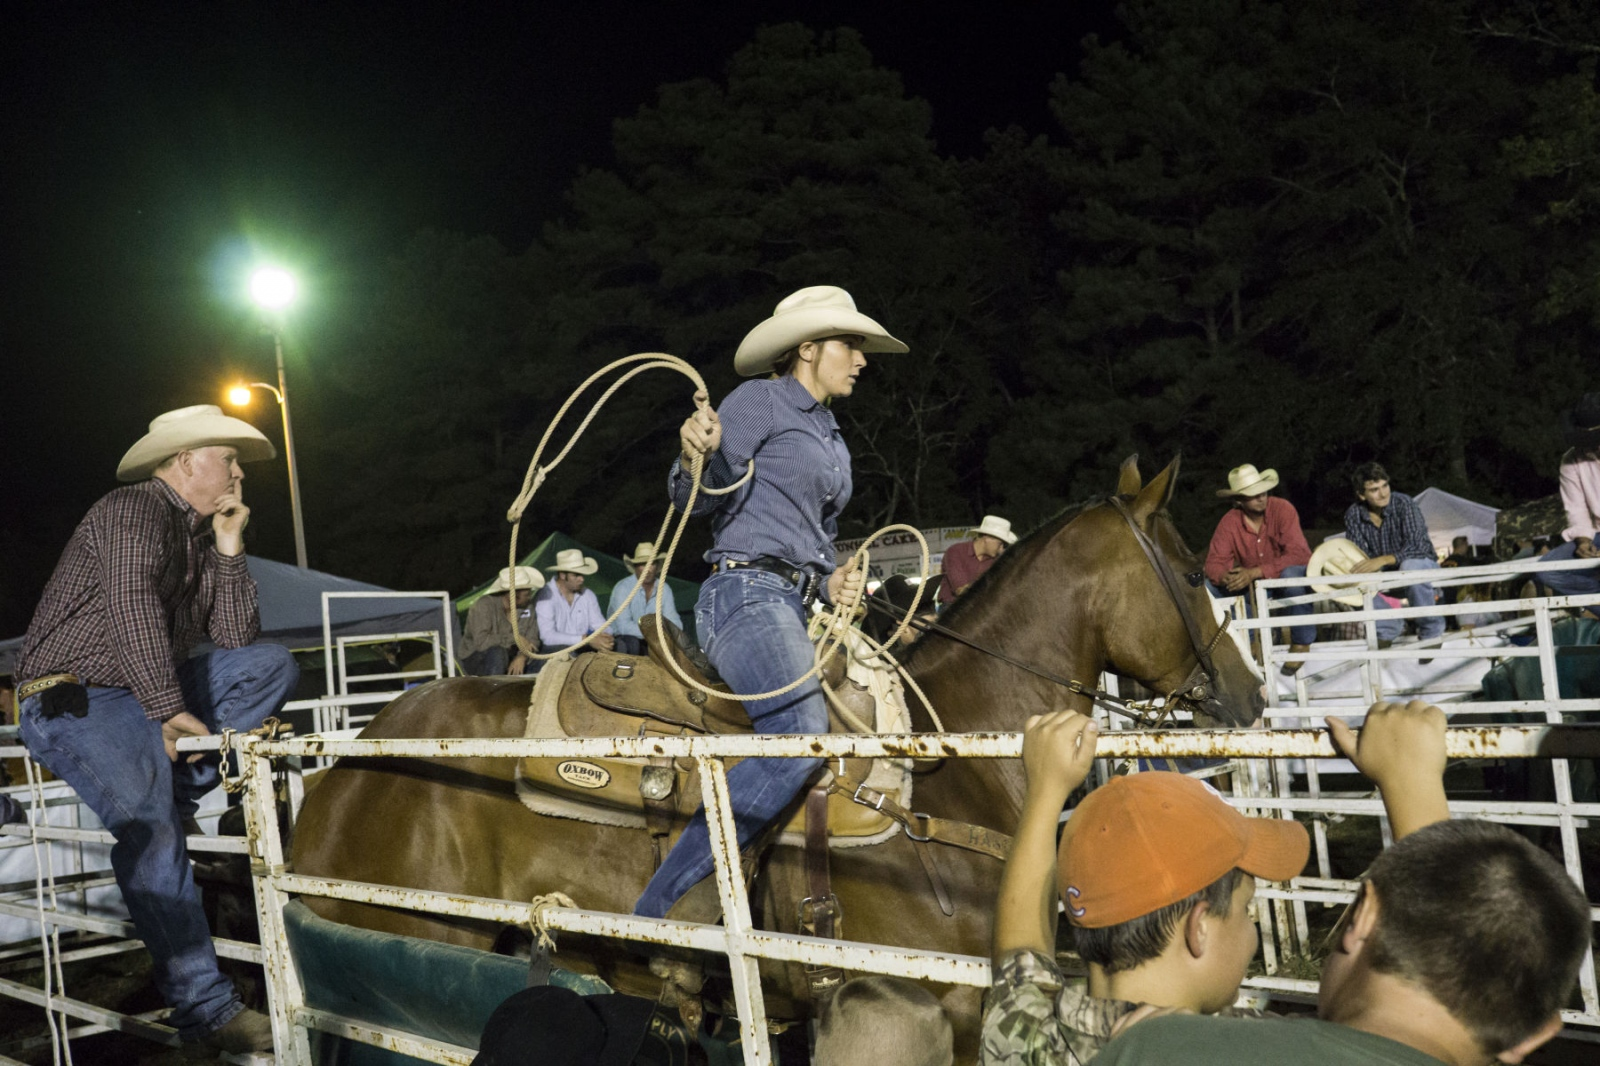 Kevin C Downs Photography Sweethearts Of The Rodeo